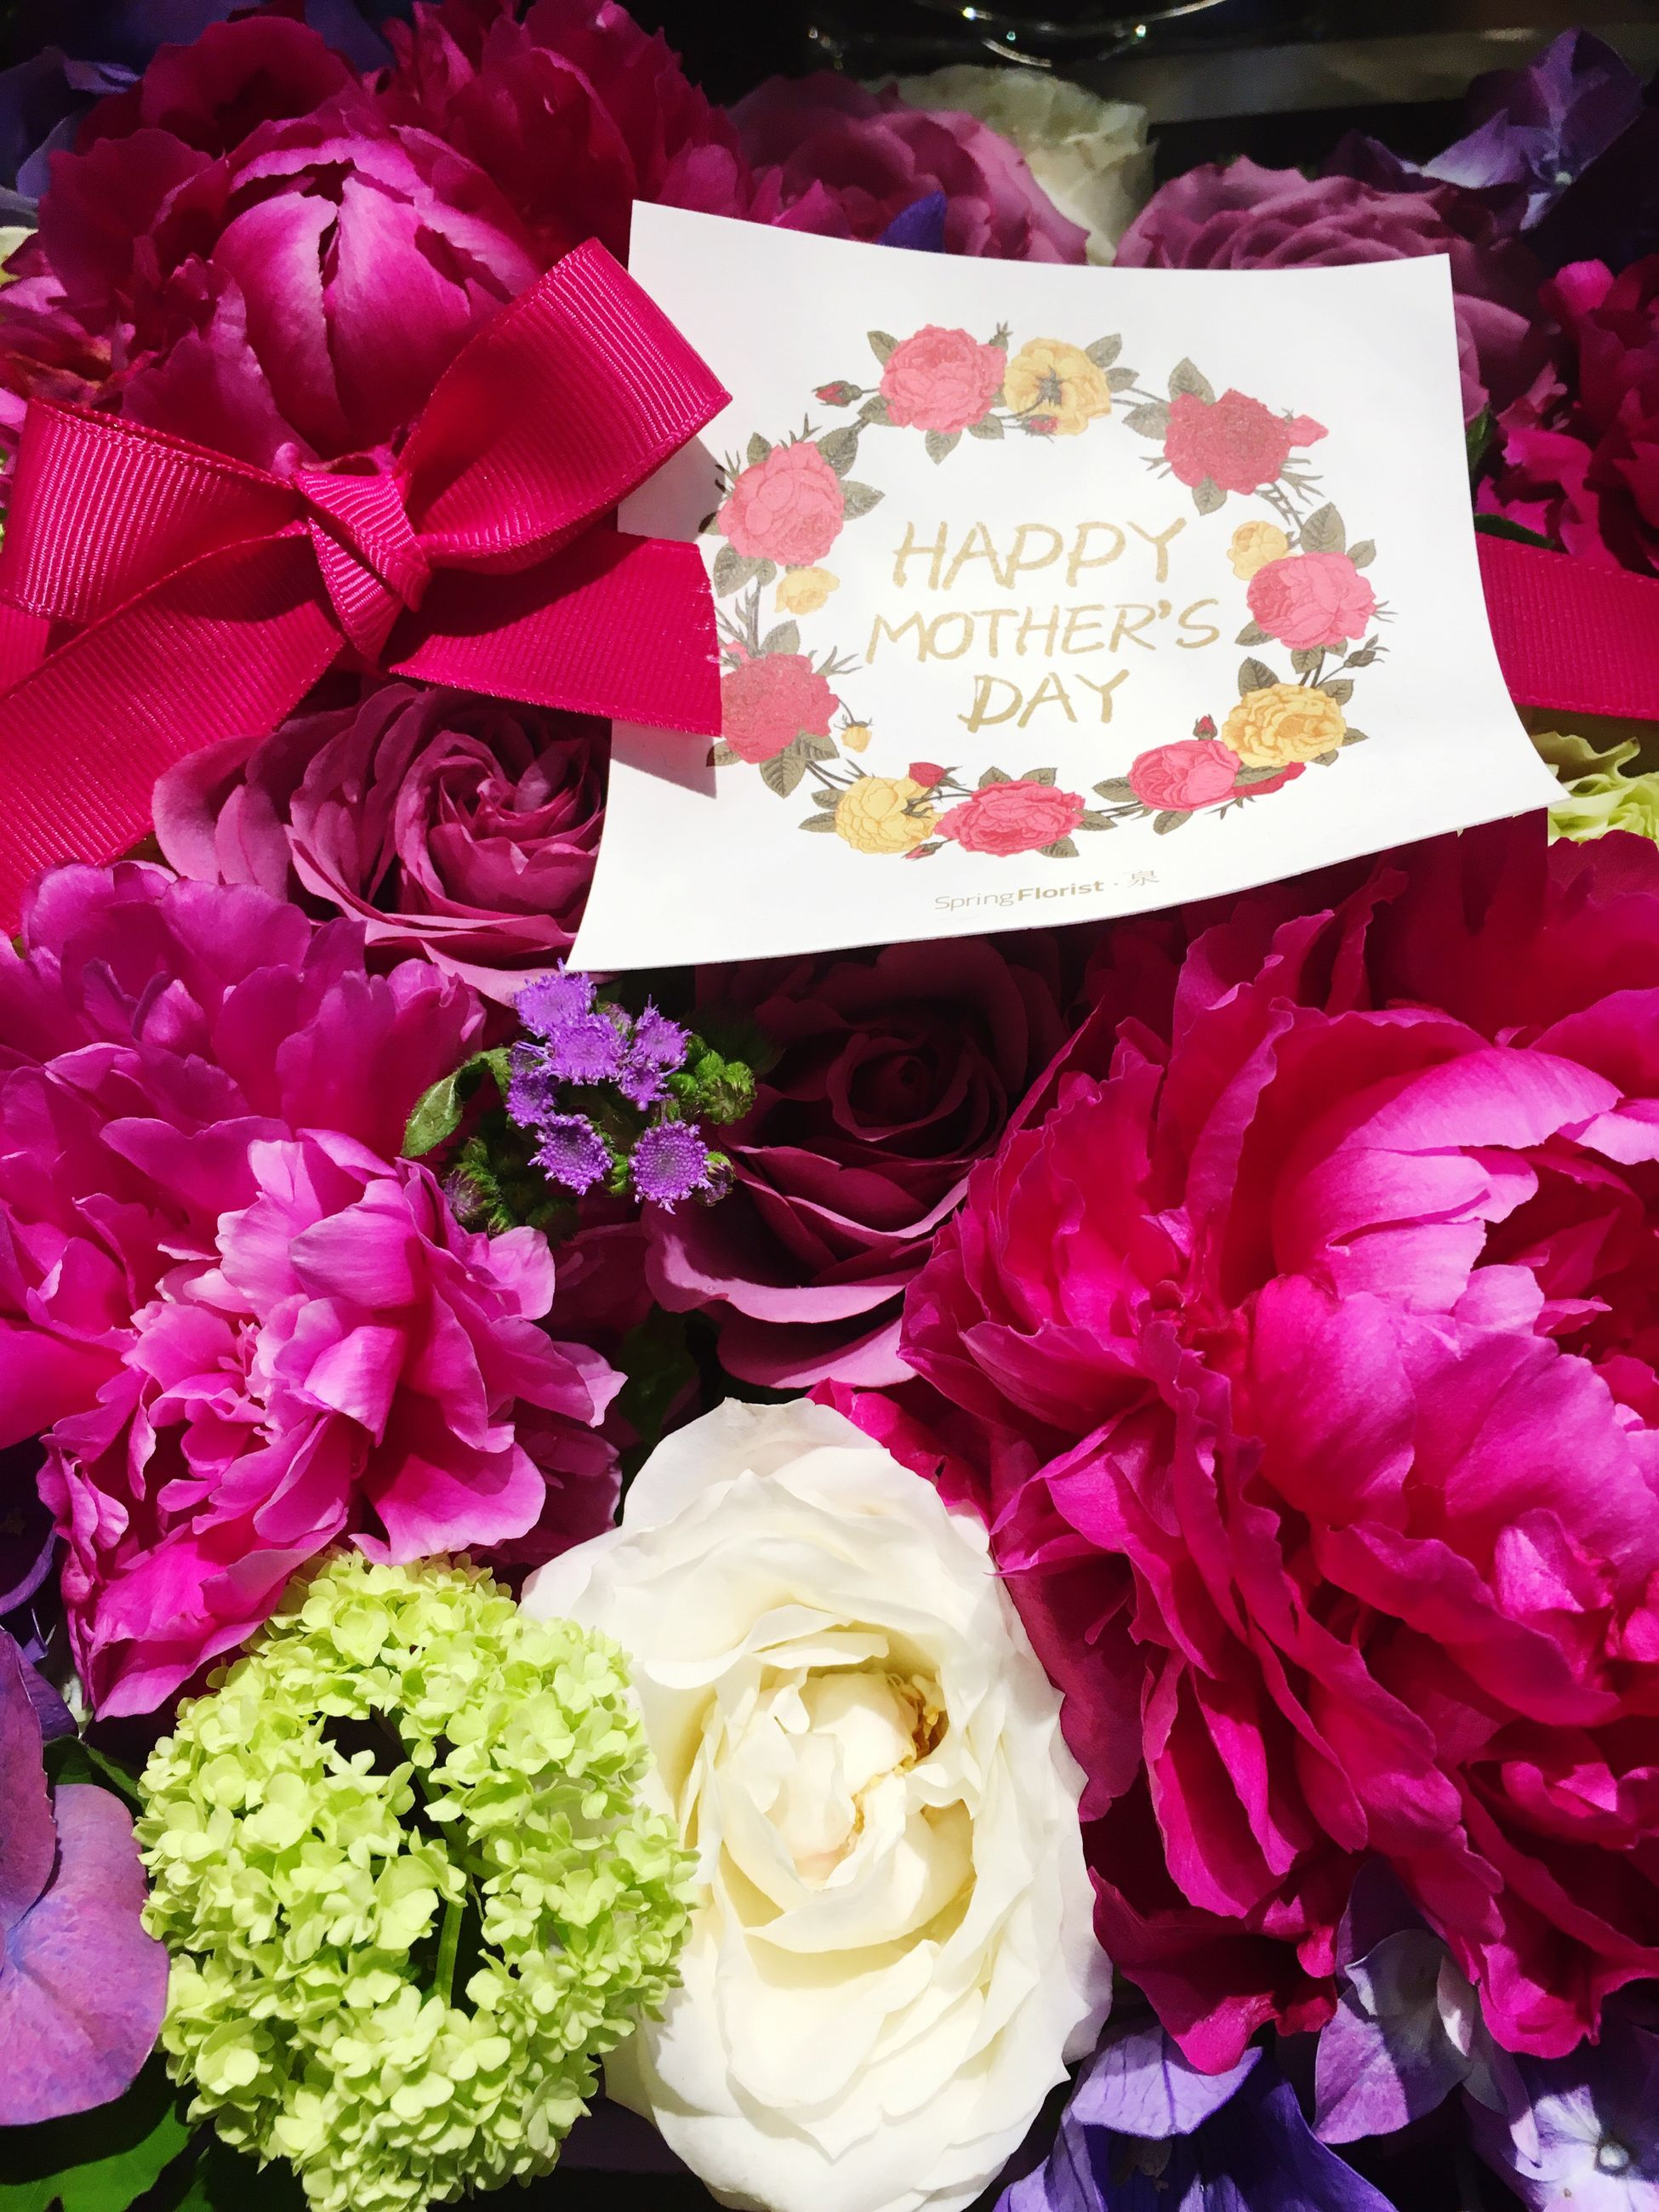 flower, freshness, indoors, petal, rose - flower, fragility, flower head, bouquet, beauty in nature, high angle view, pink color, bunch of flowers, close-up, abundance, full frame, decoration, multi colored, variation, nature, flower arrangement